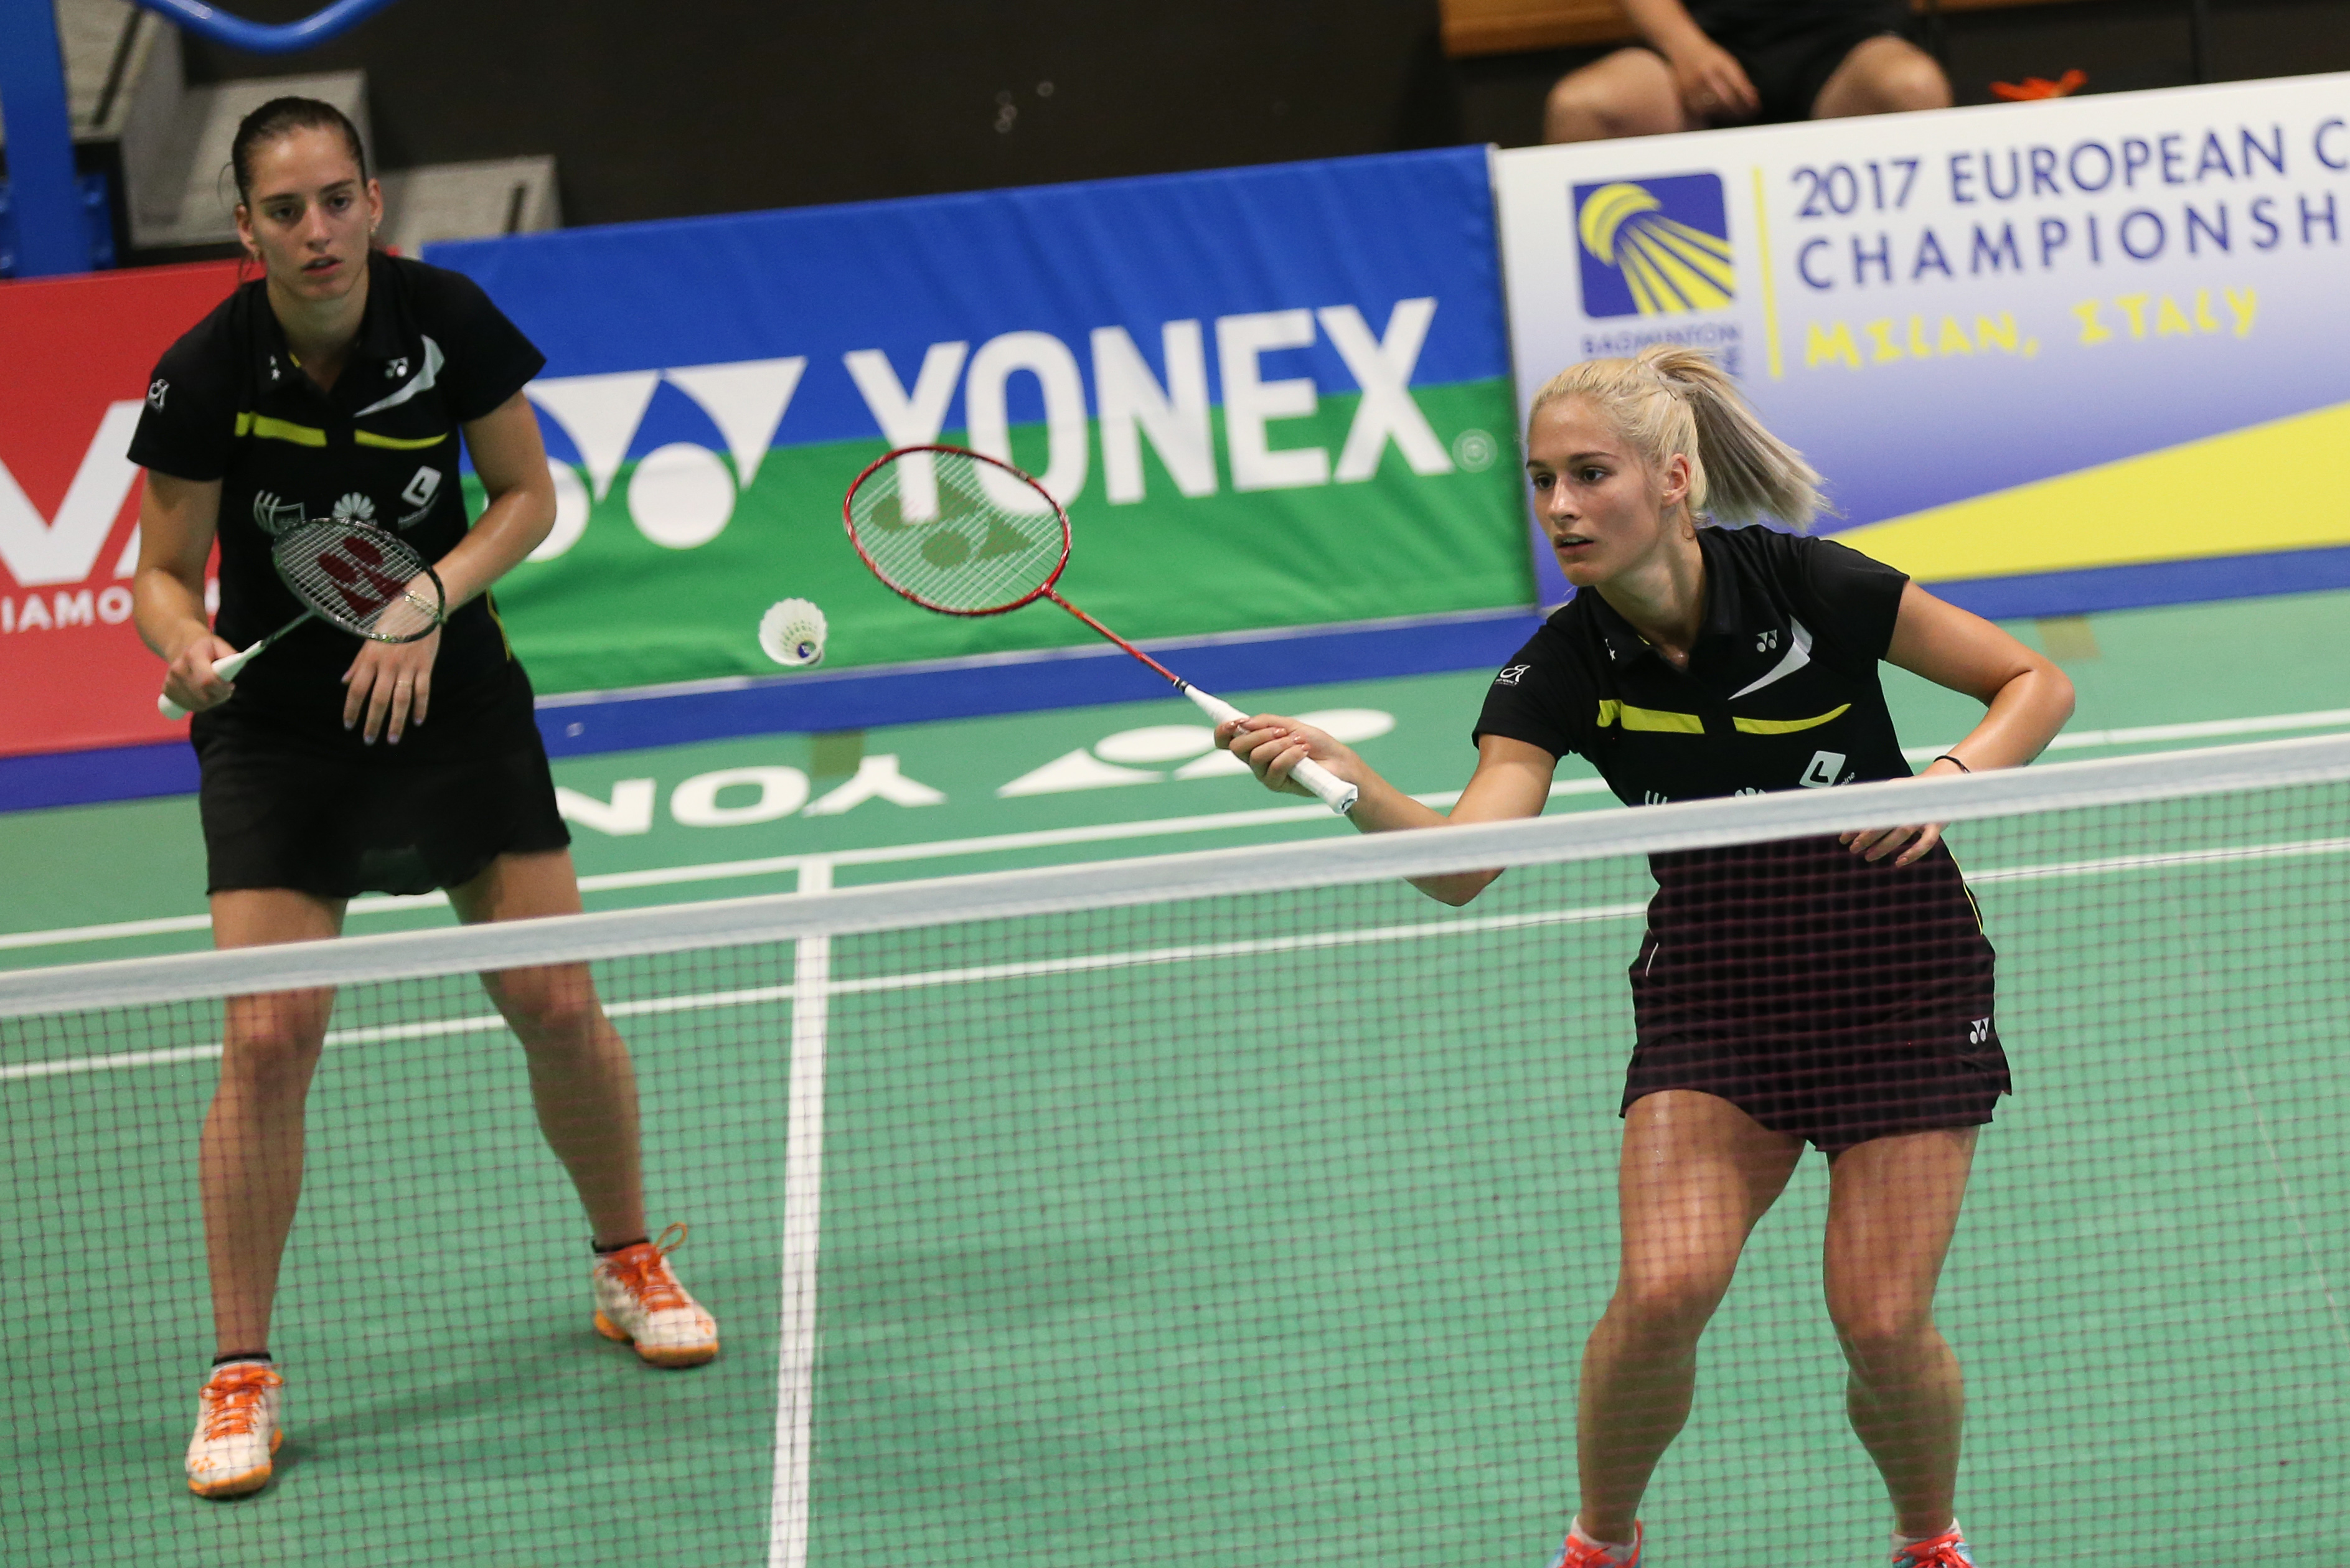 Champions give Swede s a Euro wakeup call